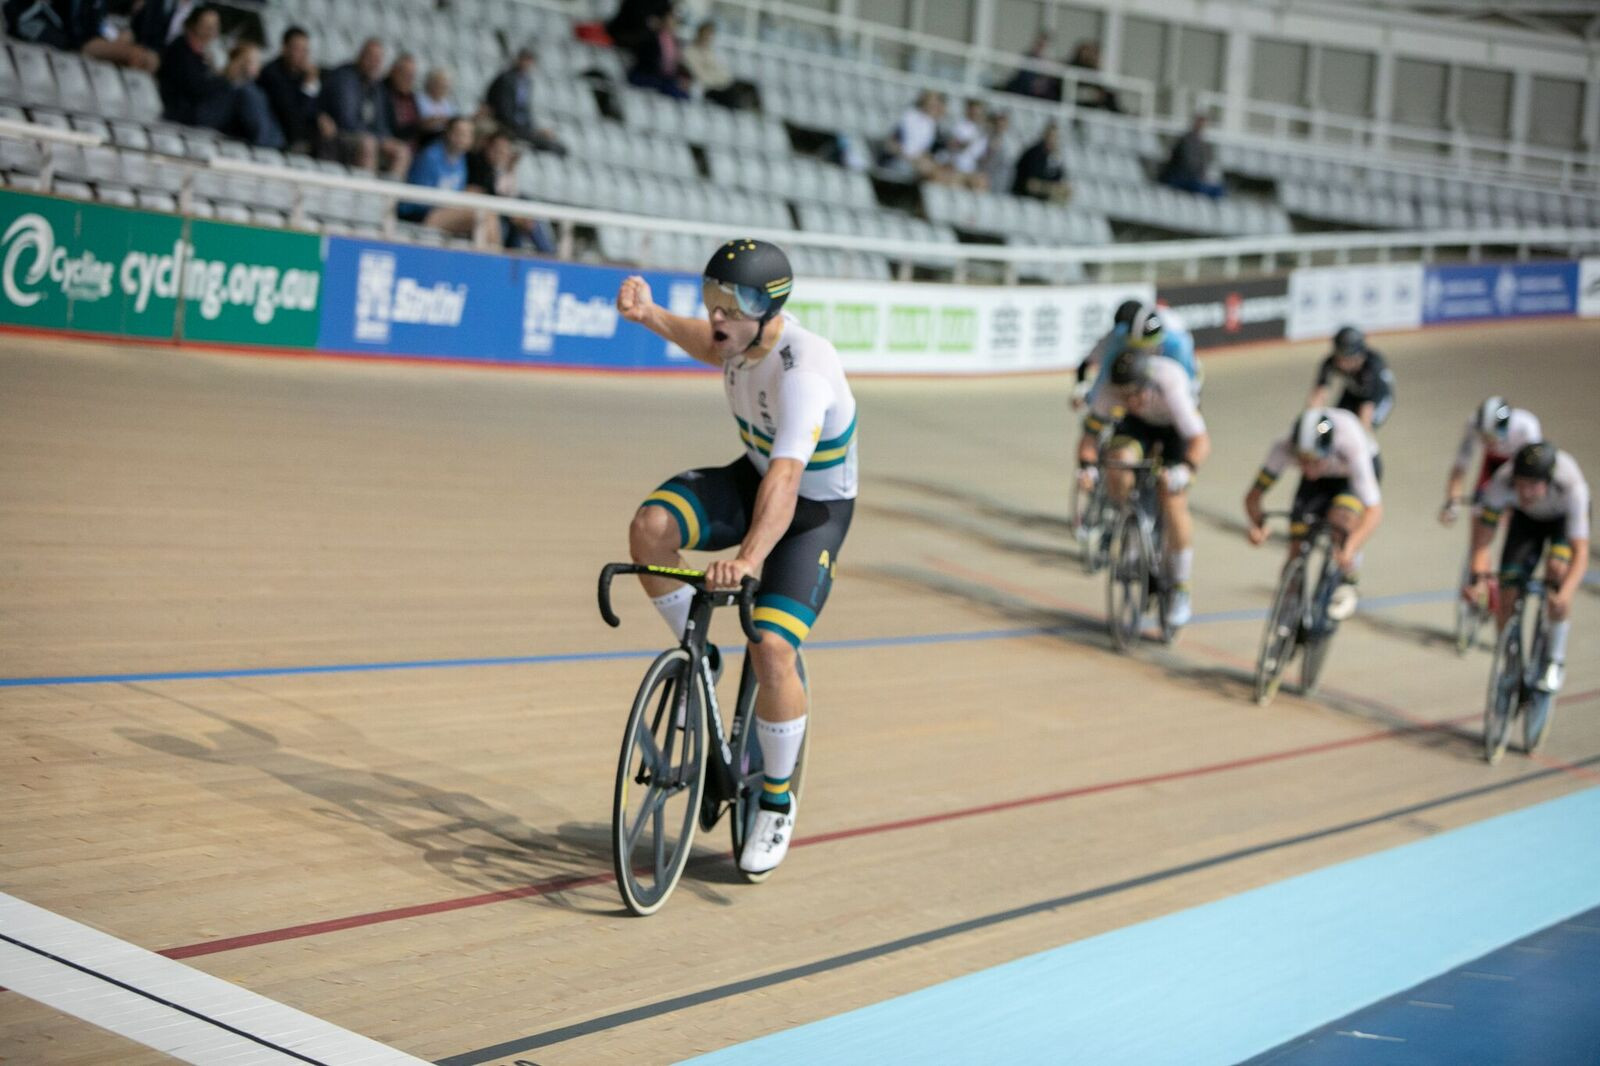 Two golds for Welsford as Australia dominate once more at Oceania Track Cycling Championships